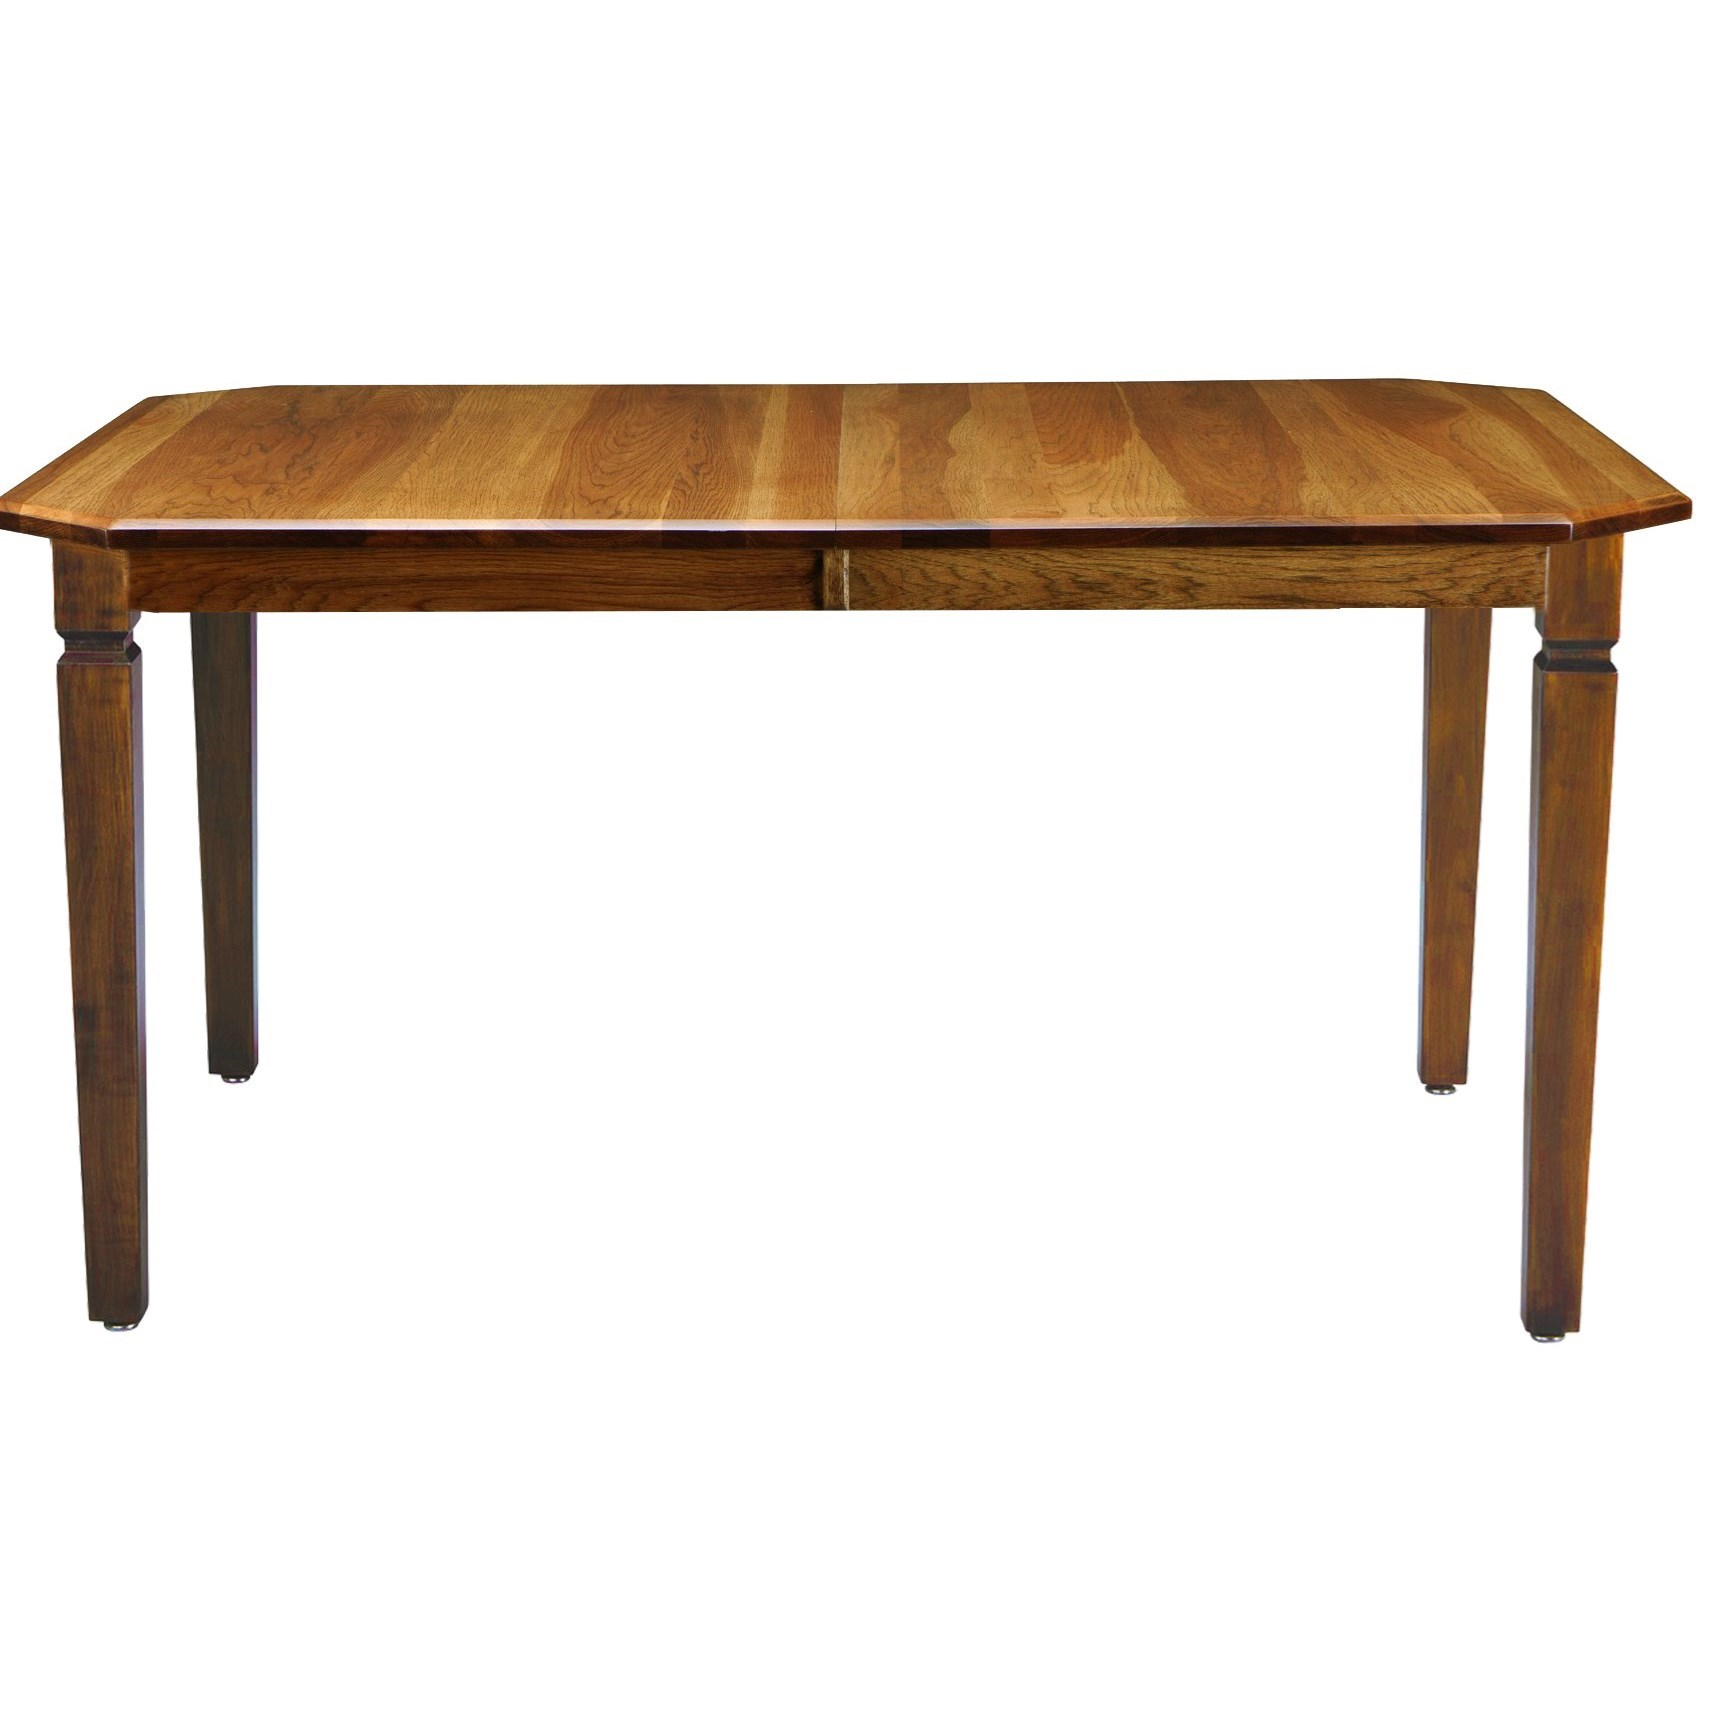 Lifestyles Lite Dining Clipped Corner Table - Laminate Top by Palettes by Winesburg at Dinette Depot